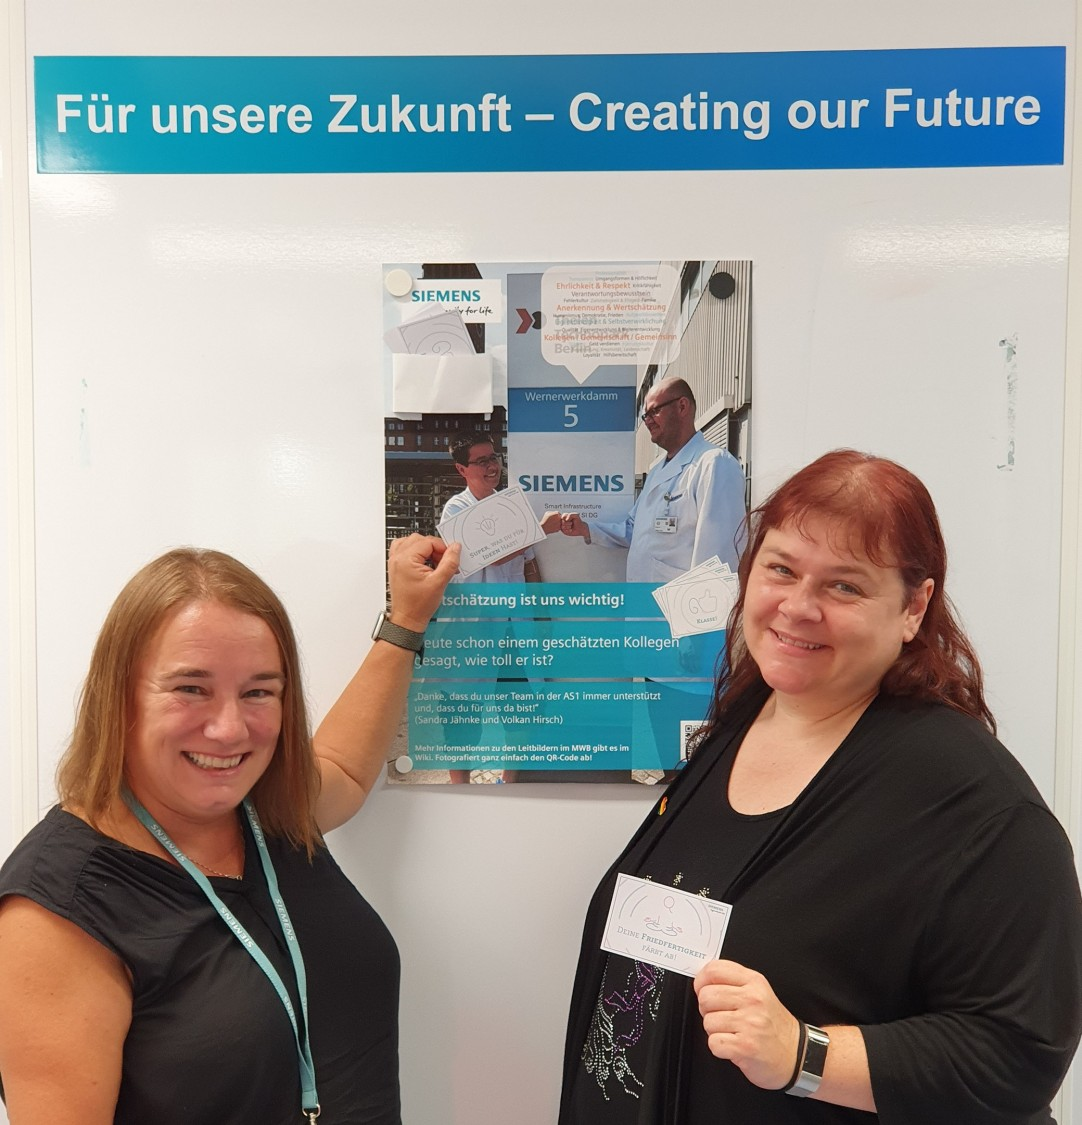 Initiators of the poster campaign, Anja Mack (left) and Tanja Schmettlach